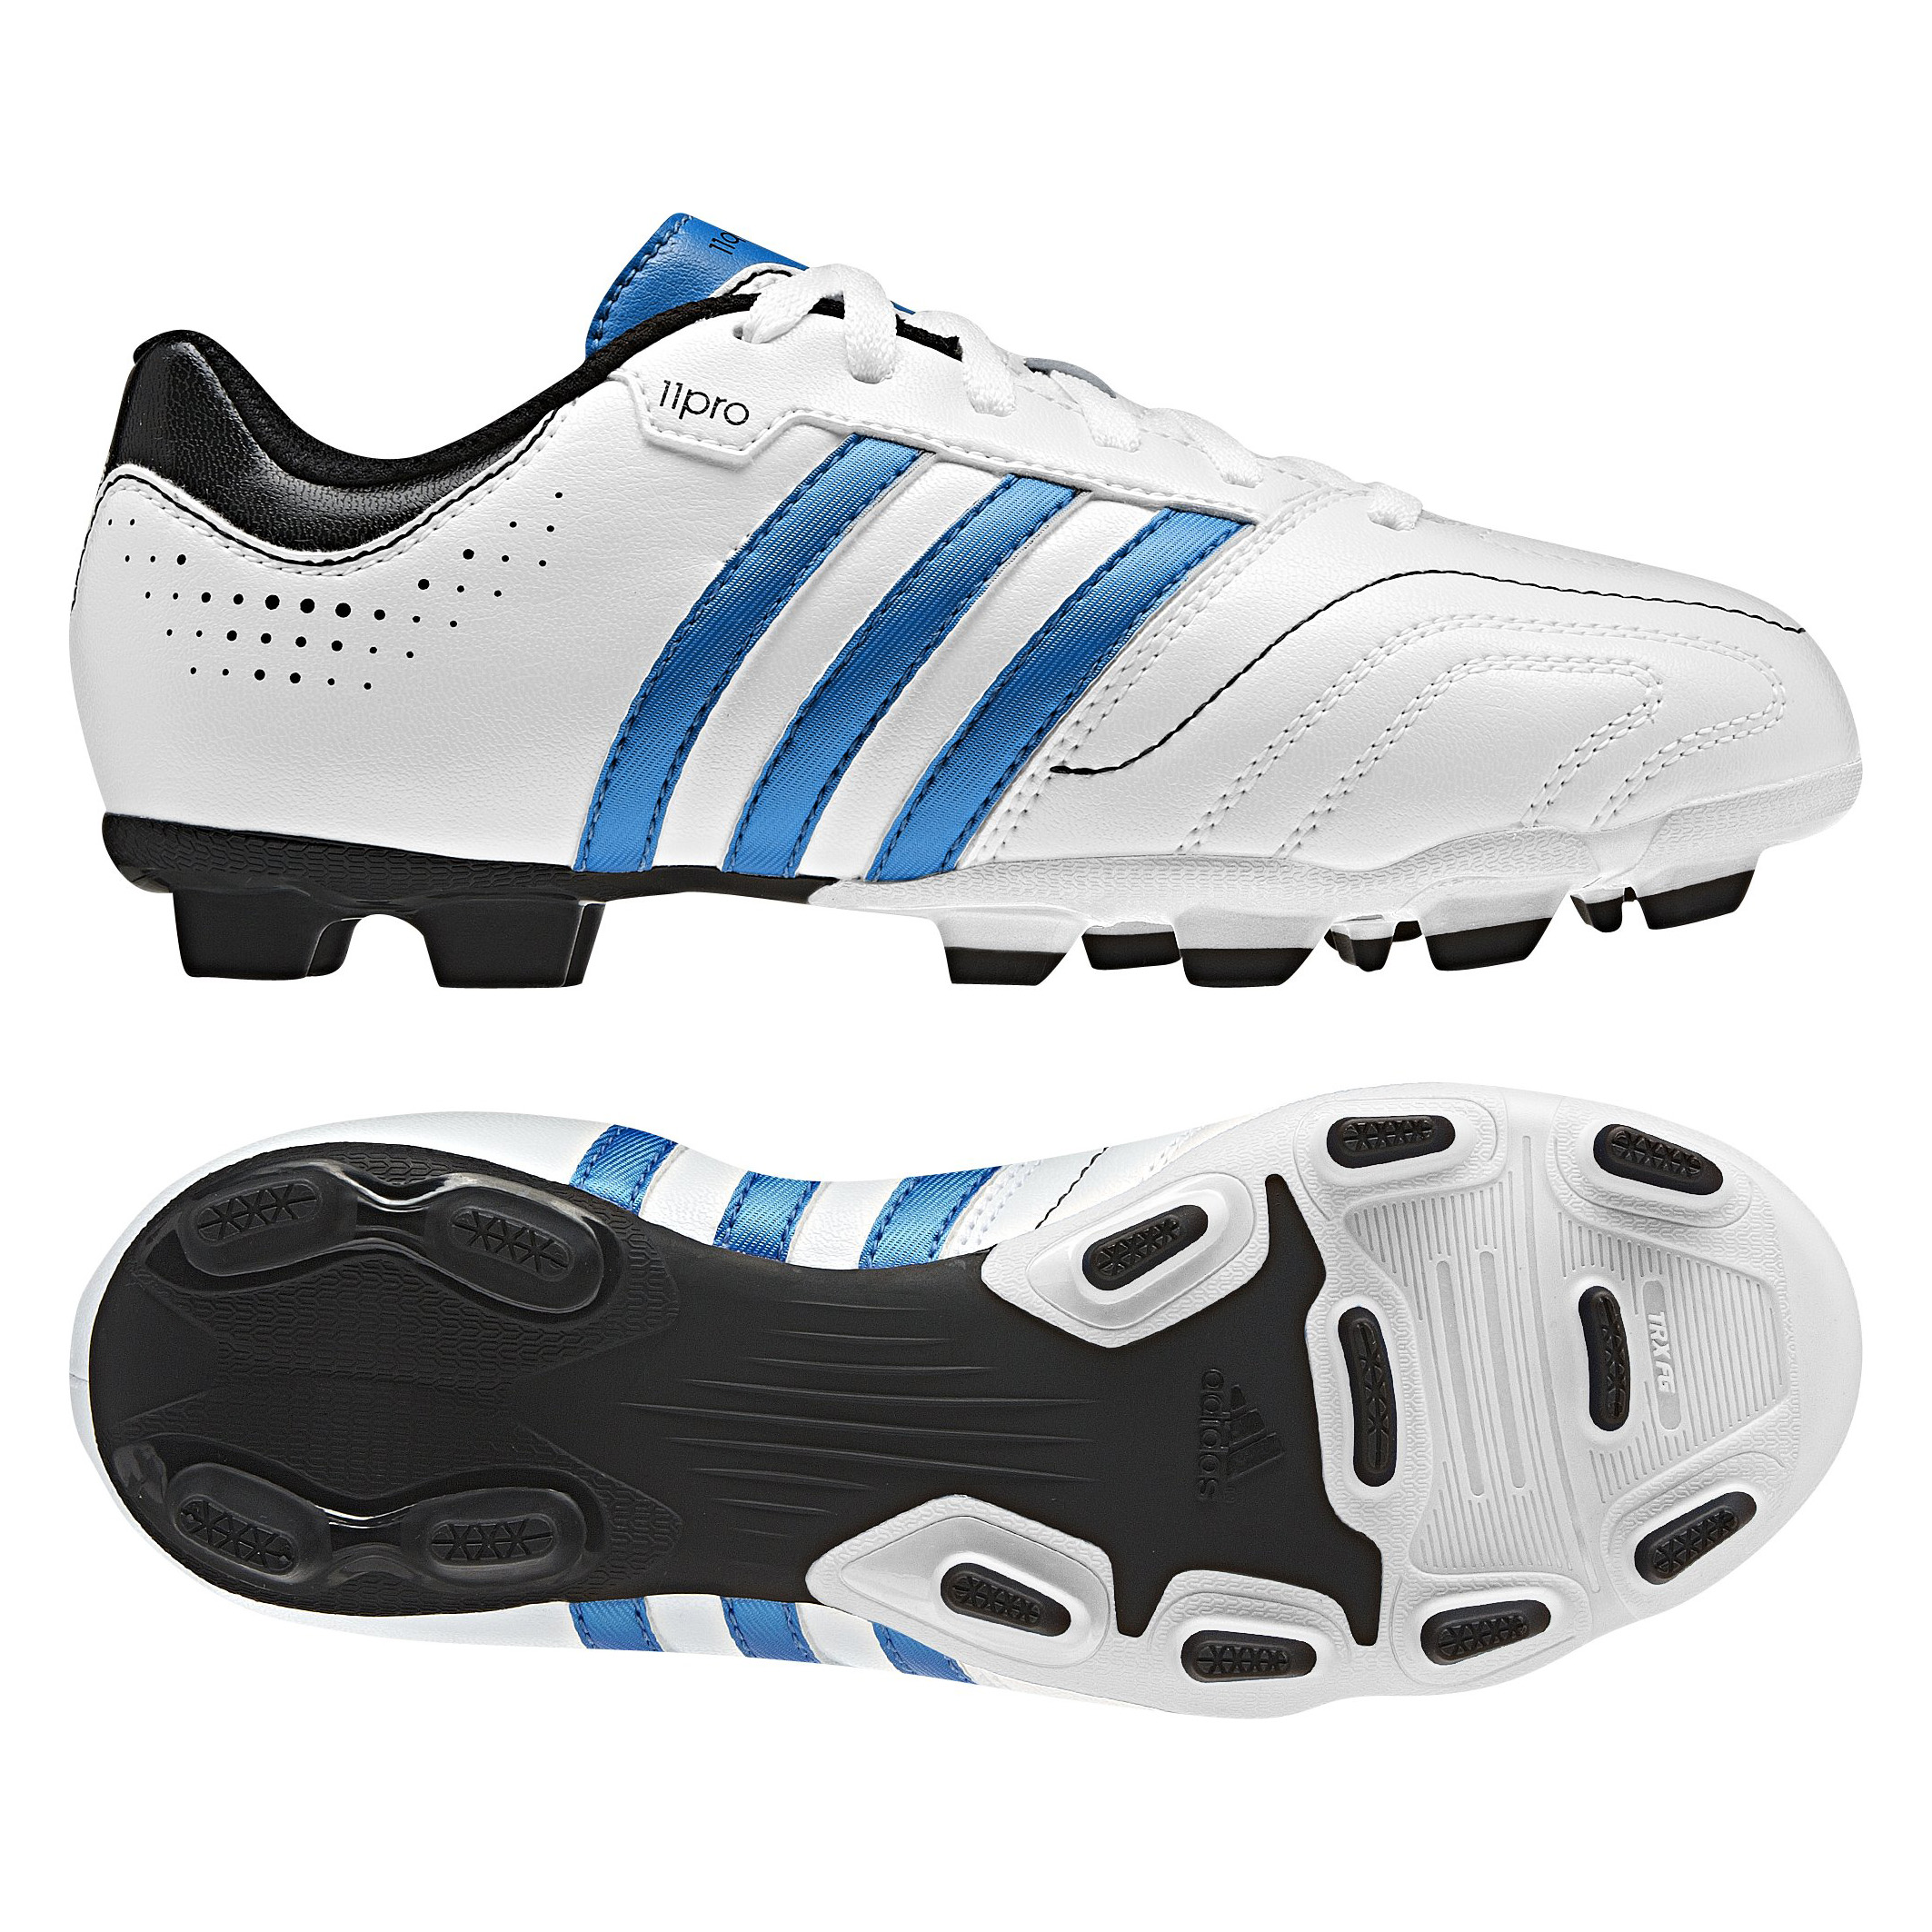 Adidas 11Questra TRX Firm Ground Football Boots - White/Bright Blue/Black - Kids